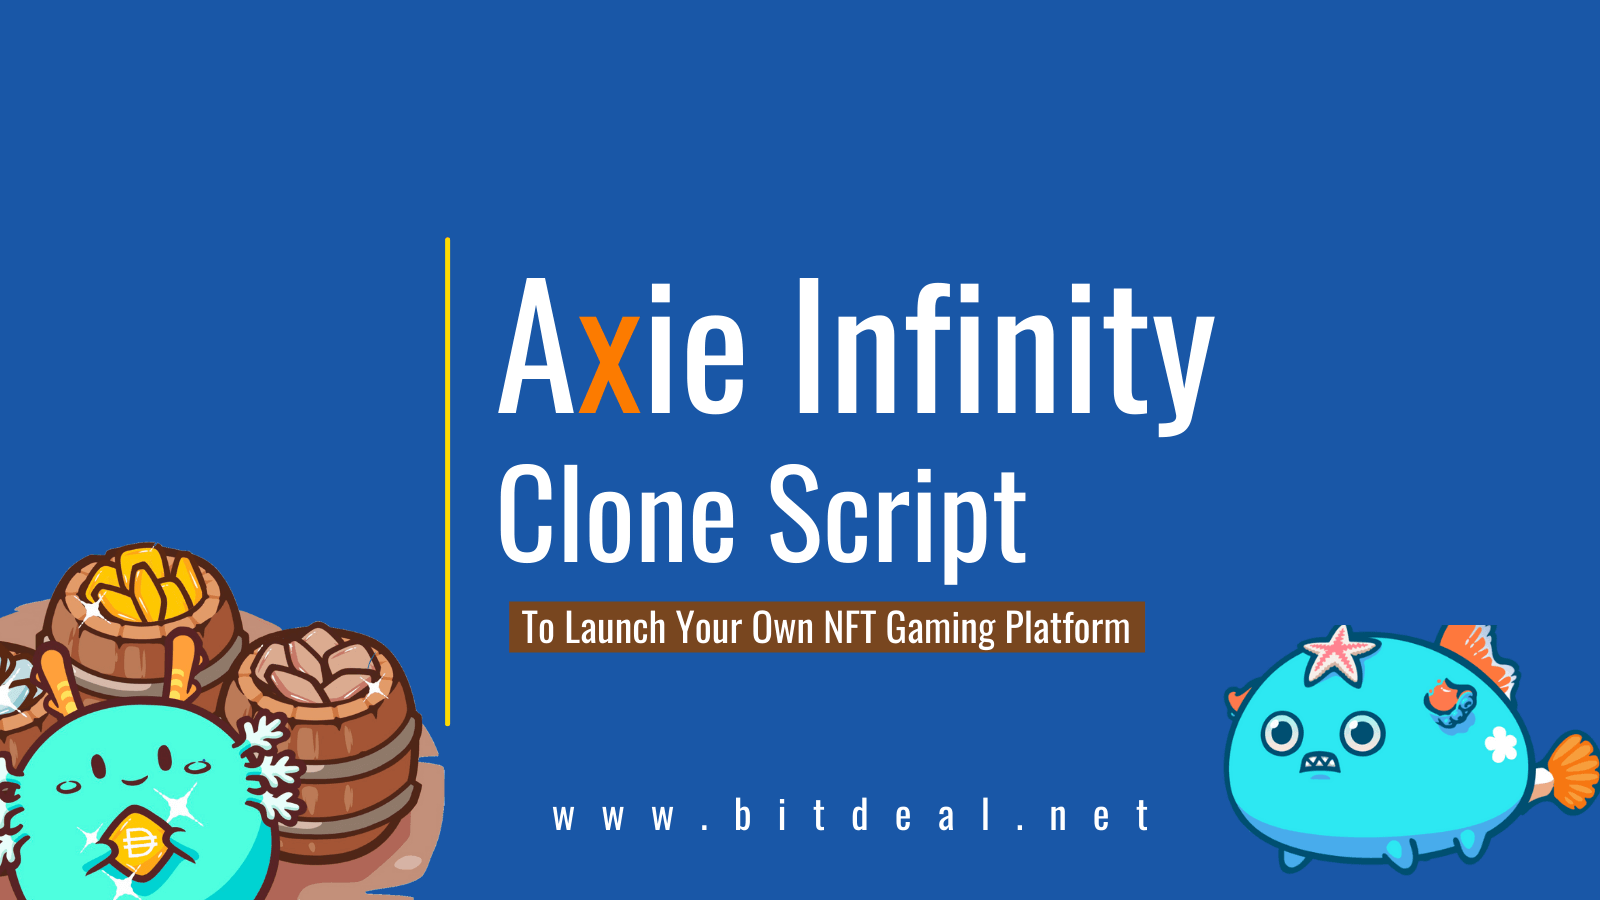 Axie Infinity Clone Script To Start Your Own NFT Gaming Platform